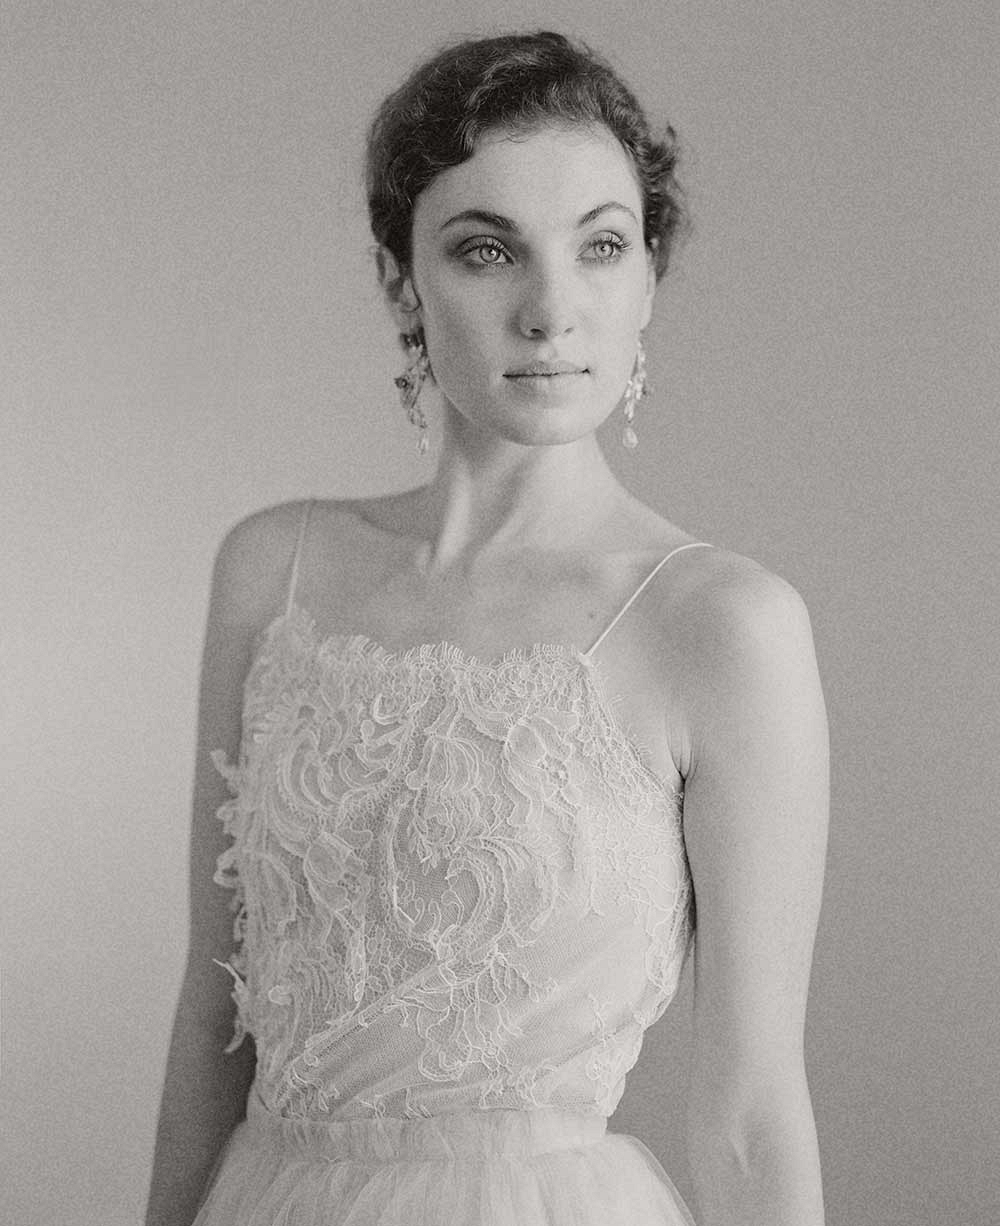 Accessories and Gowns from Bridal Fashion Week